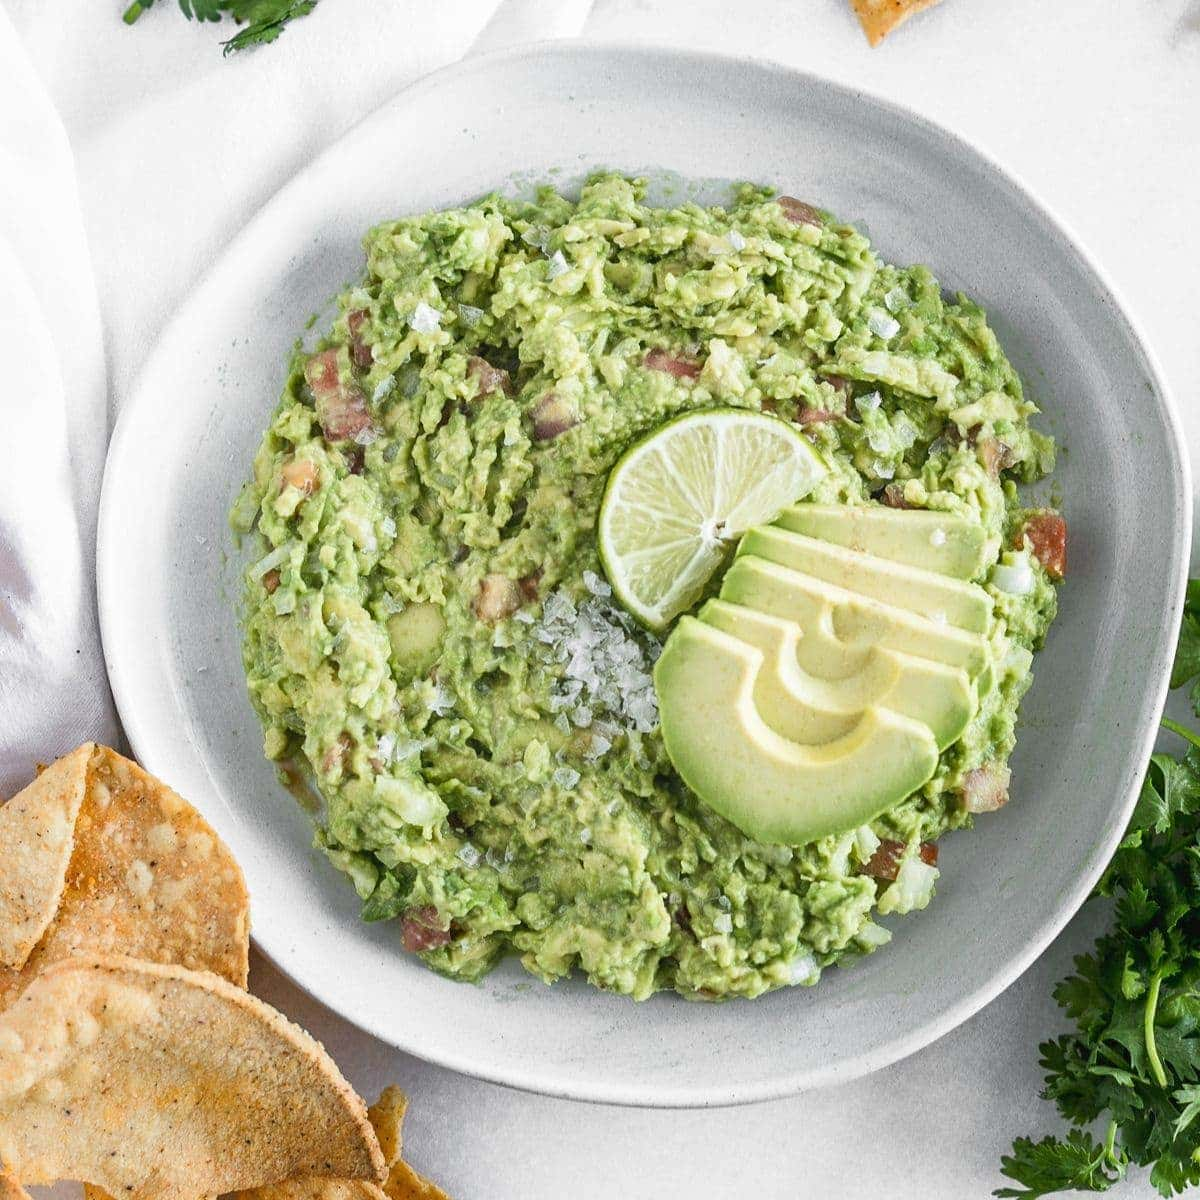 This easy guacamole recipe has just a few simple ingredients and is the perfect healthy dip to accompany any Tex-Mex dish! (gluten-free, dairy-free, nut-free, vegan)